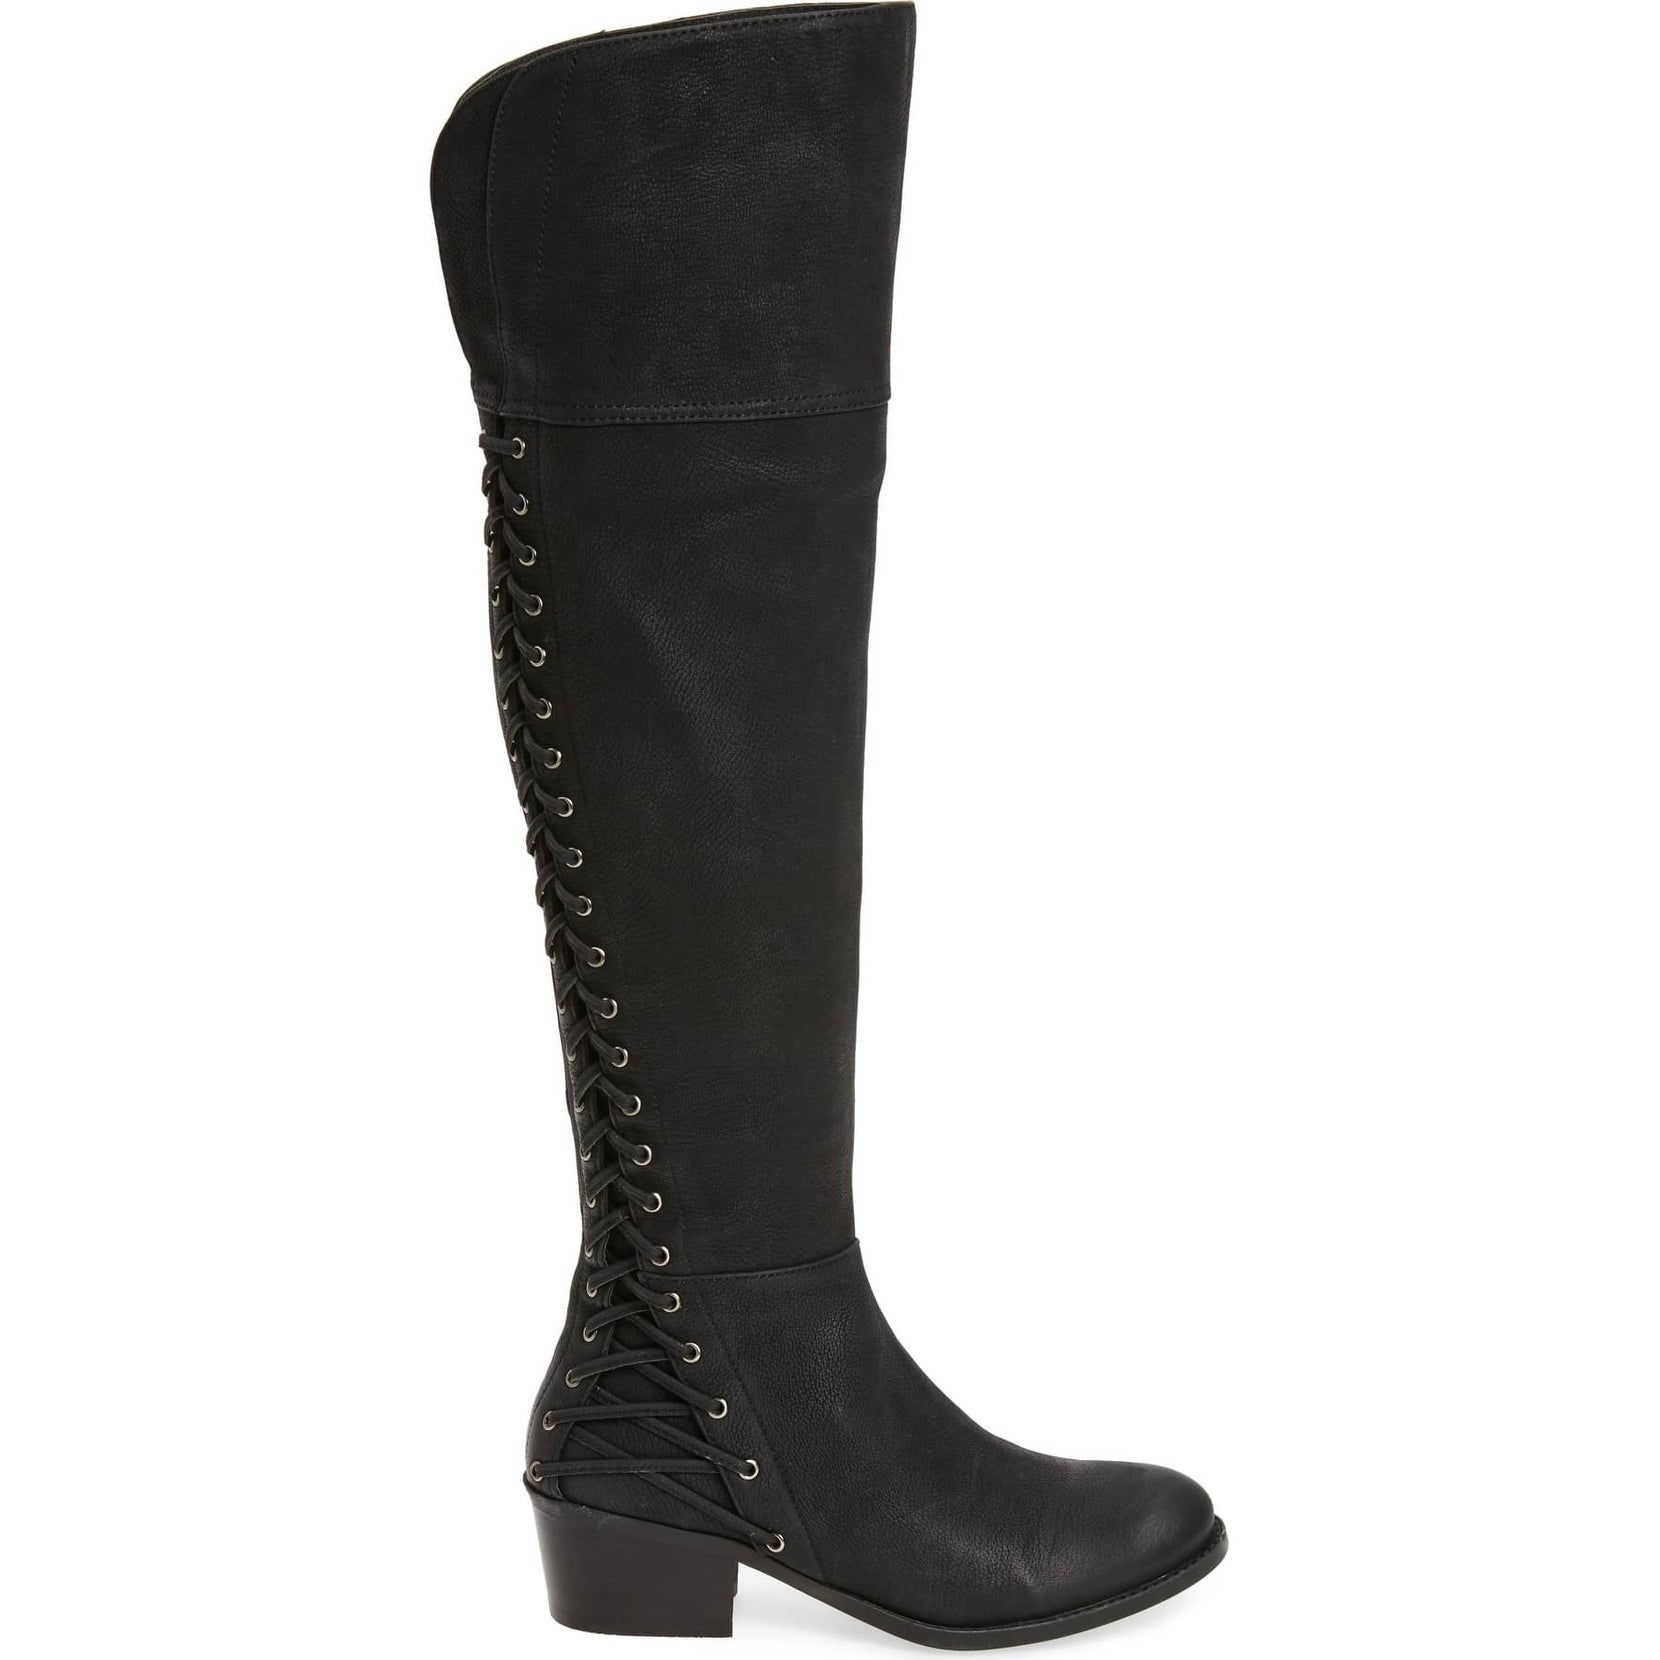 3759f0cc05d Shop Vince Camuto Bolina Black Leather Over-the-knee Fitted Riding Bestan  Boot - Free Shipping Today - Overstock - 24307275